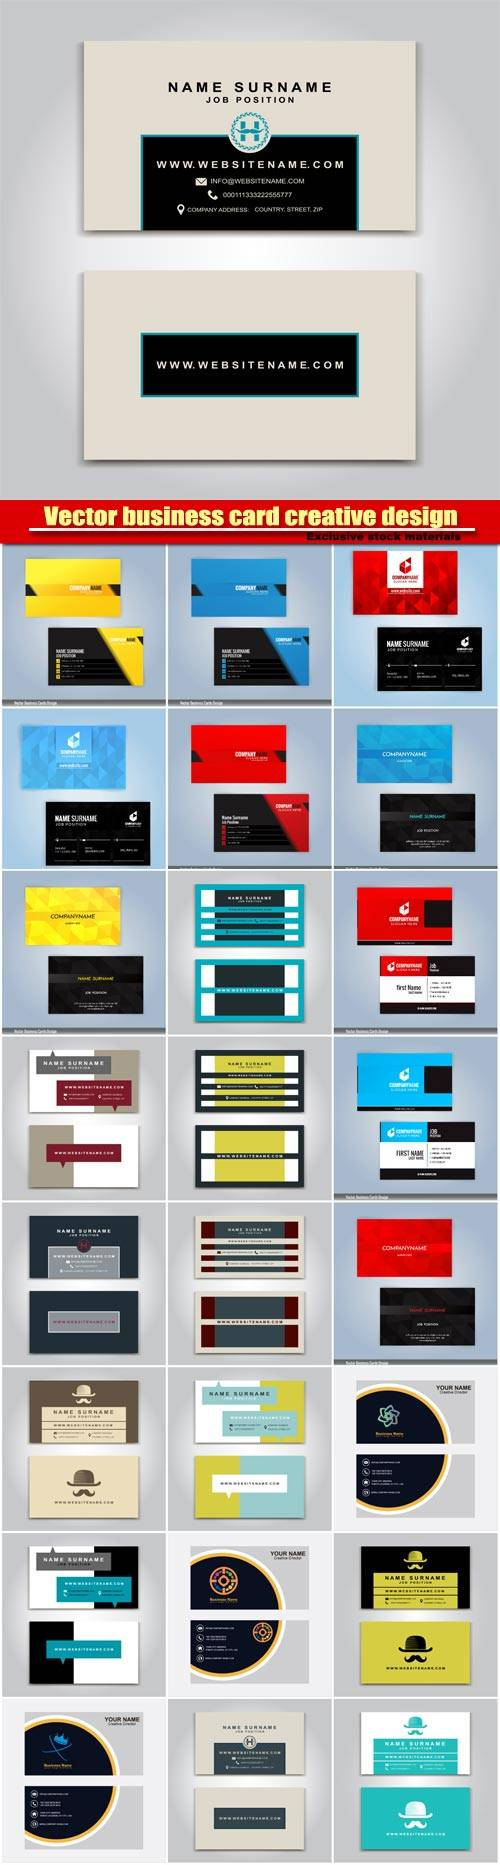 Vector business card creative design